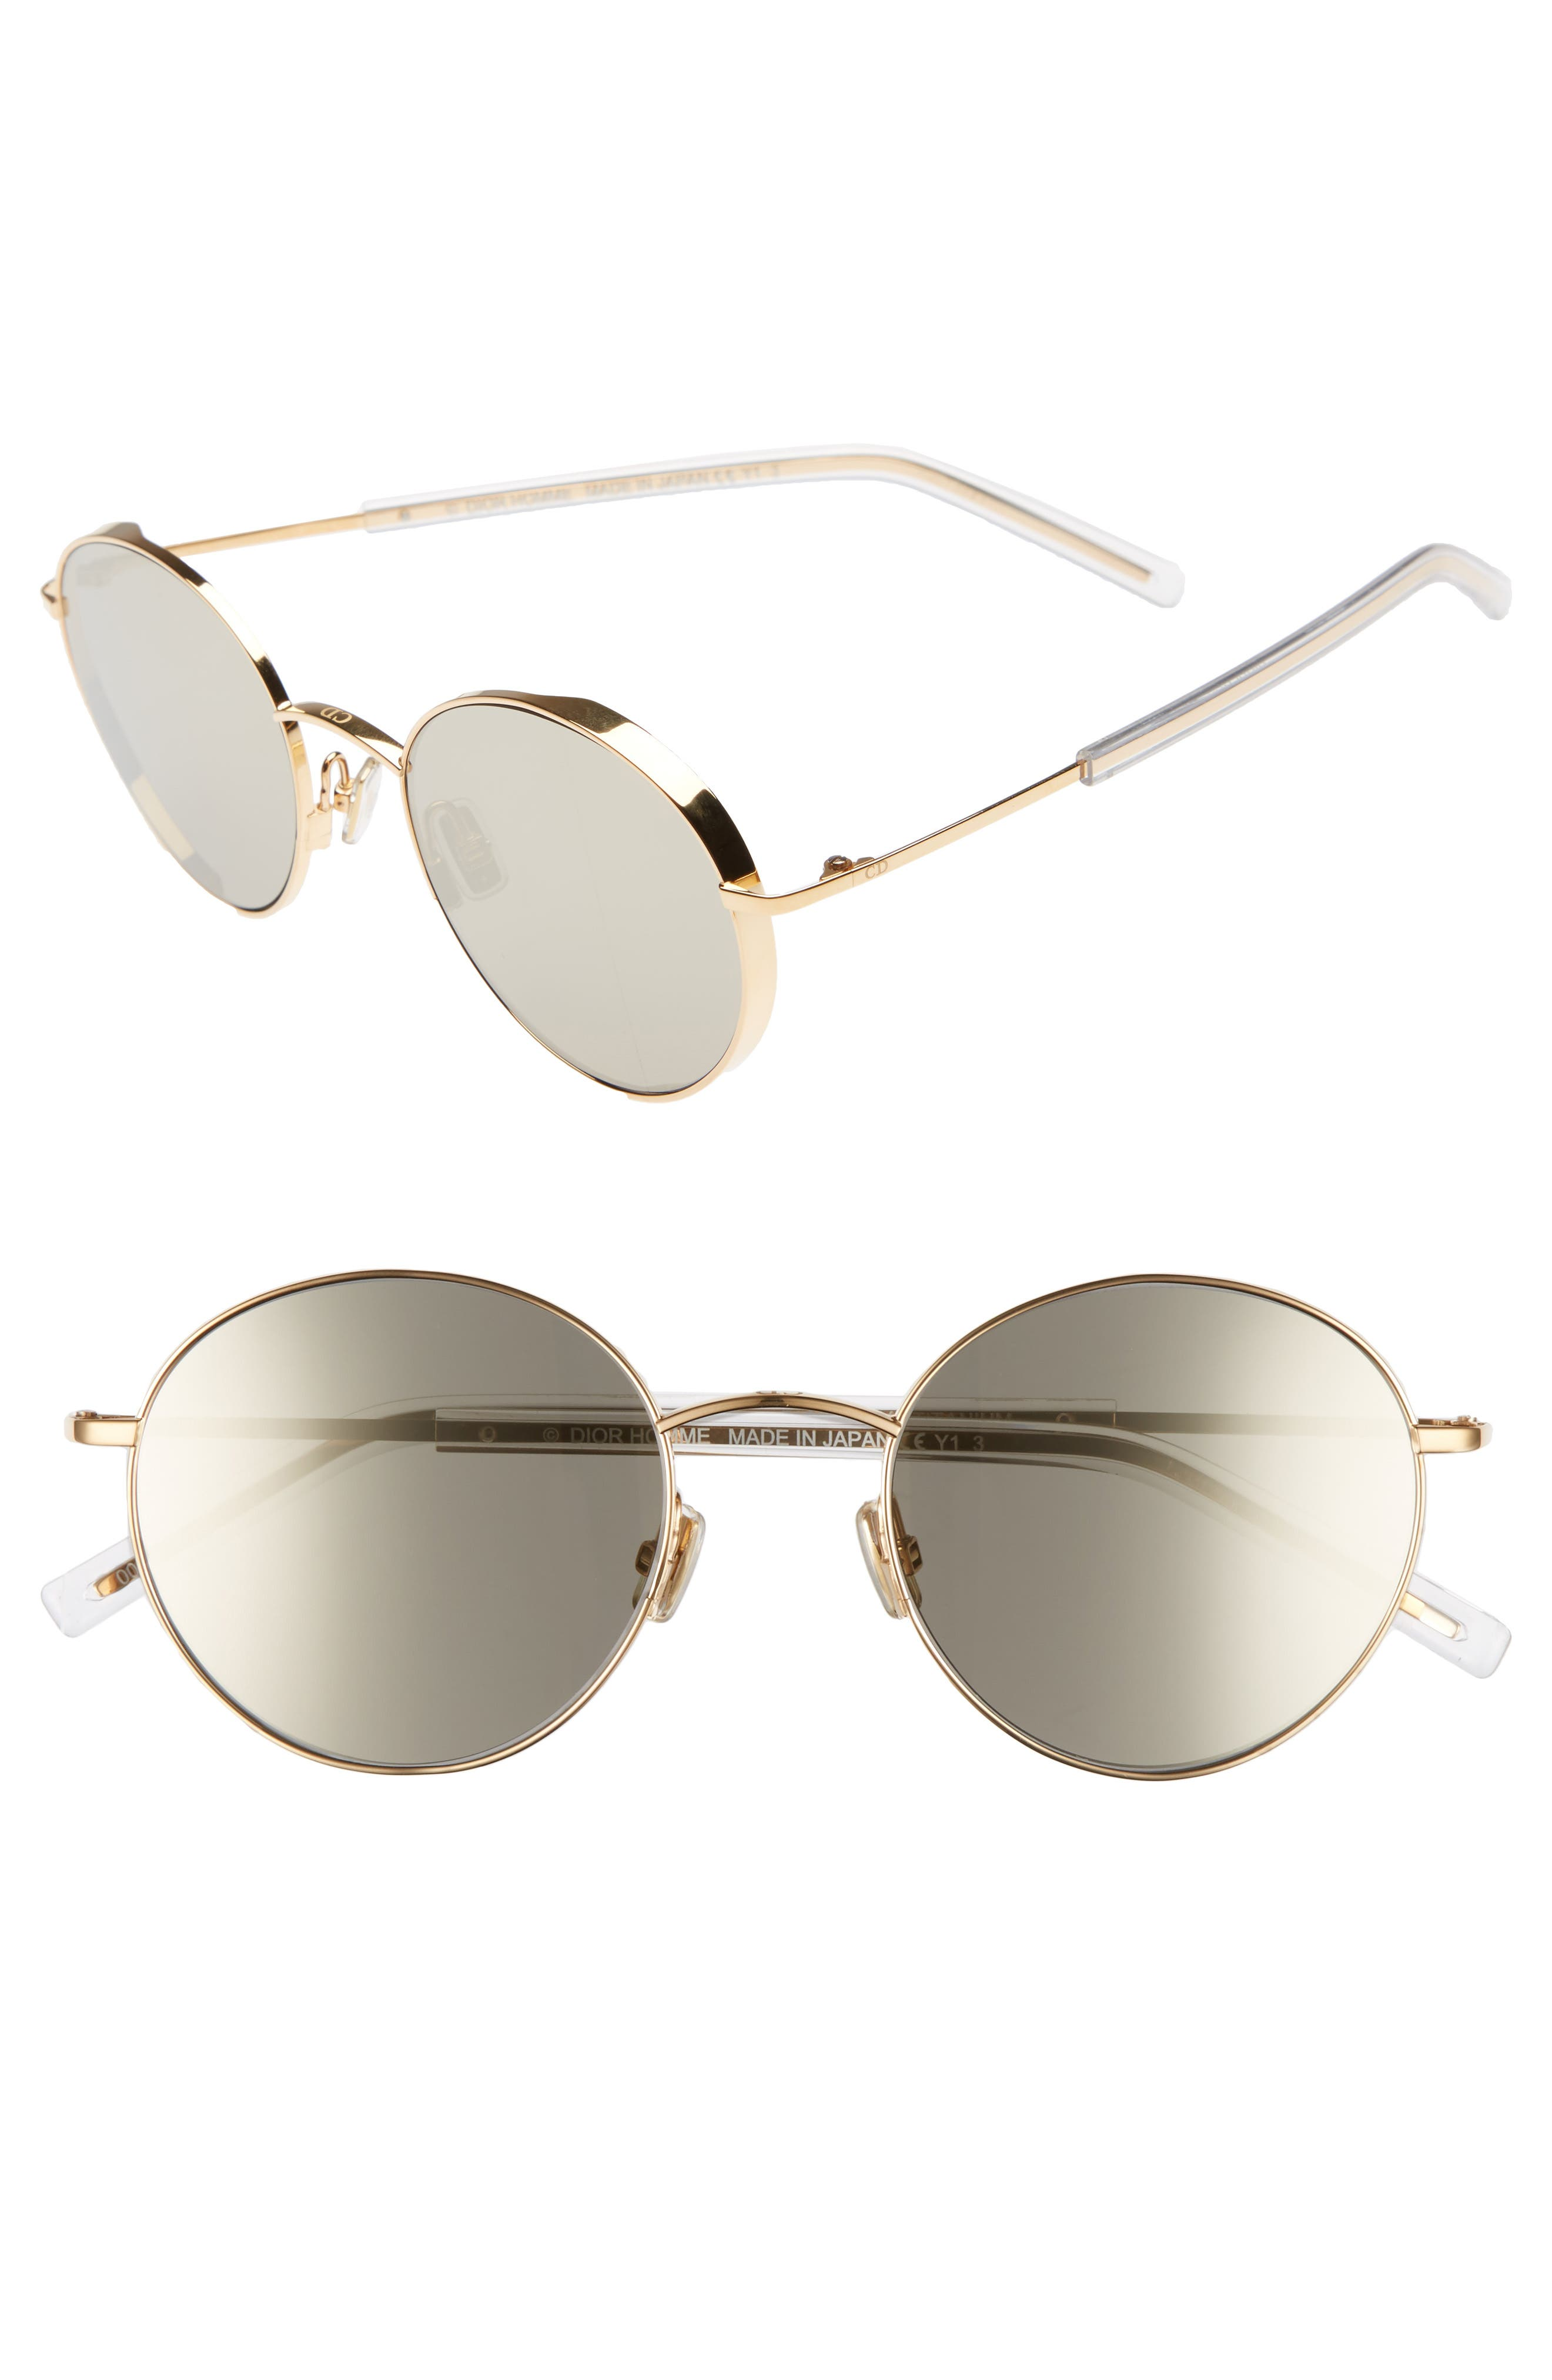 Main Image - Dior Homme Edgy 52mm Sunglasses